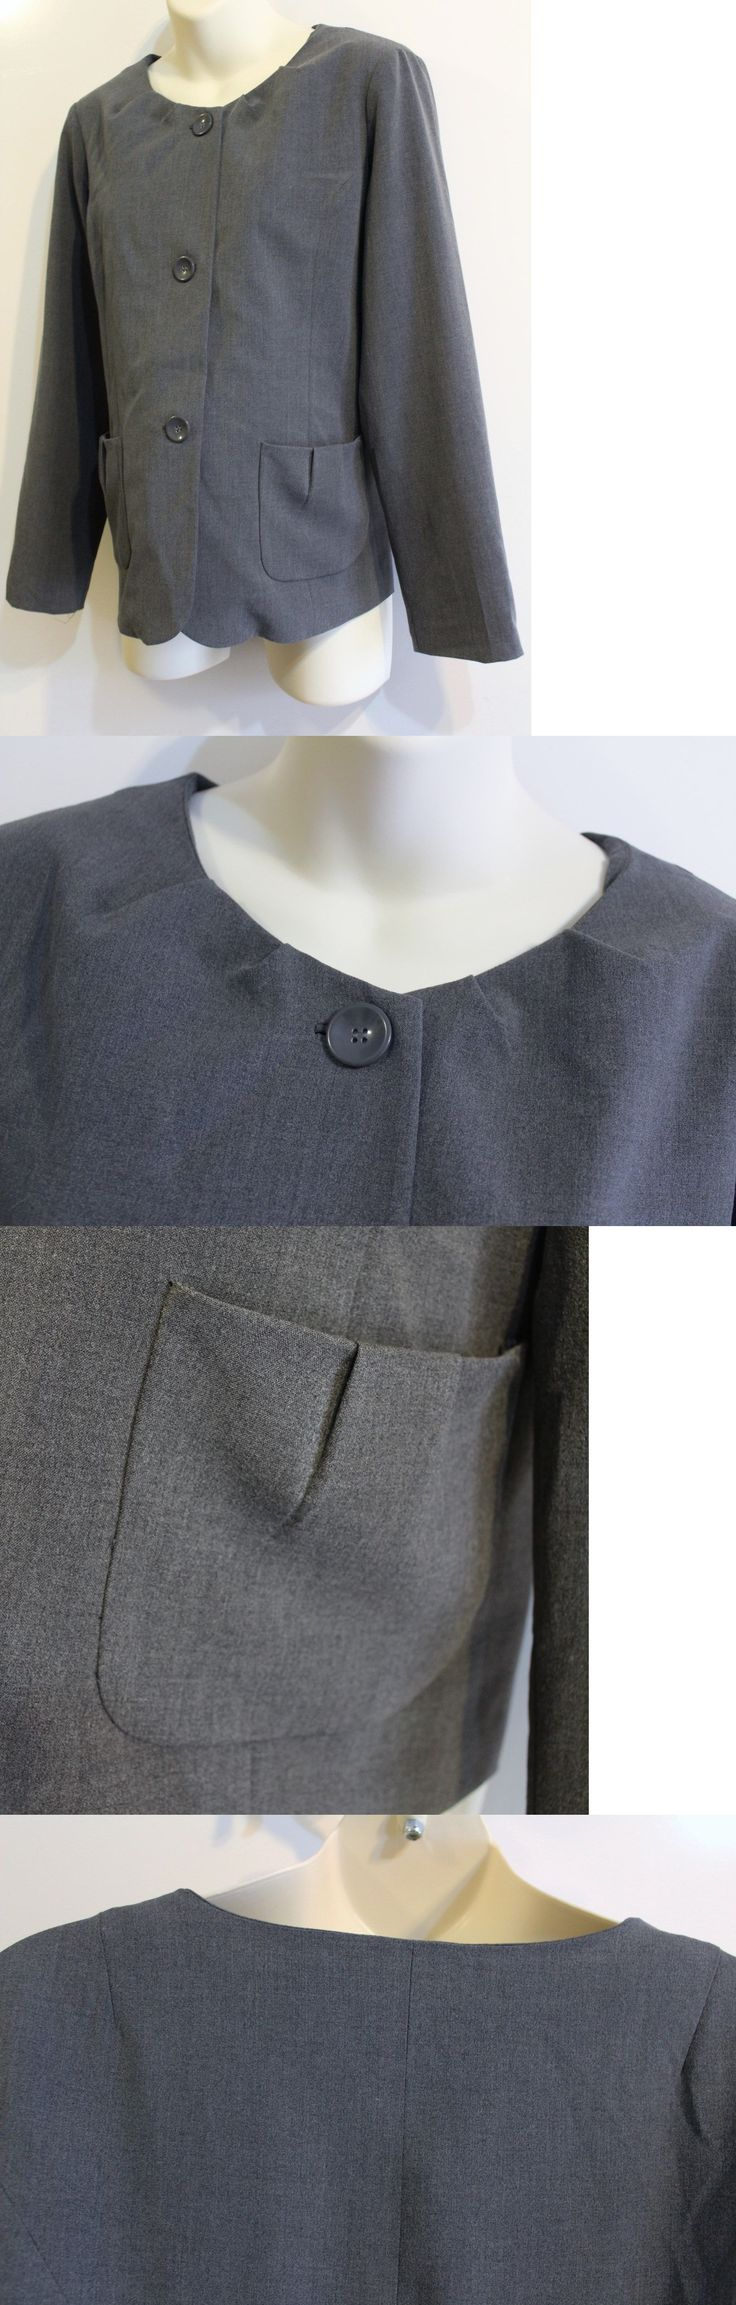 Suits and Blazers 108898: Tomorrow S Mother Maternity Suit Jacket Blazer Coat Size M Gray Career New -> BUY IT NOW ONLY: $42.75 on eBay!